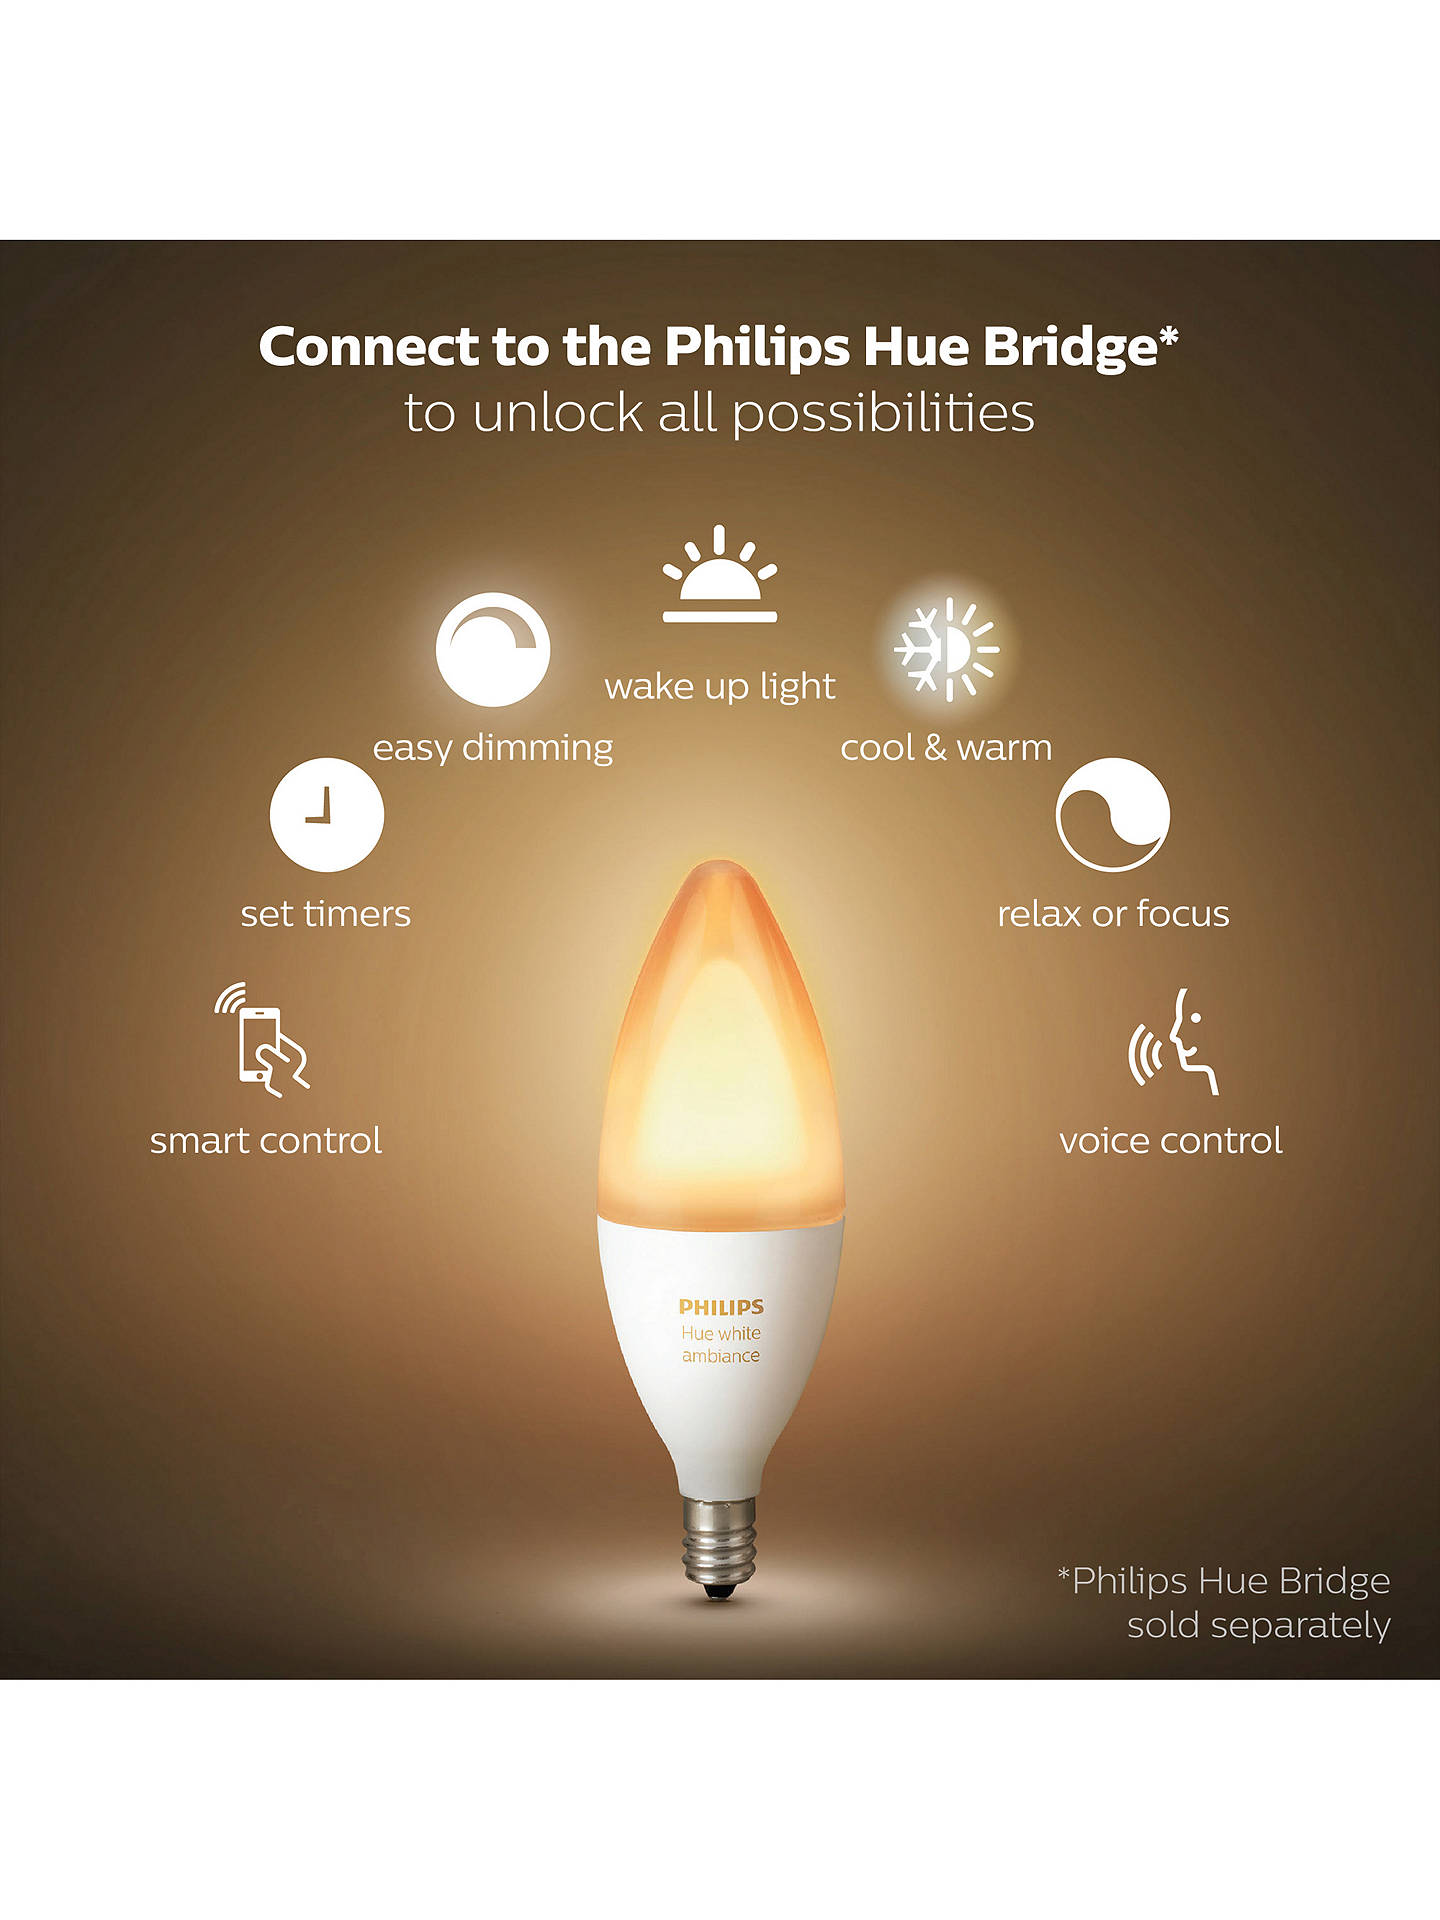 BuyPhilips Hue White Ambiance Wireless Lighting LED Light Bulb, 6W B39 E14 Small Edison Screw Bulb, Single Online at johnlewis.com